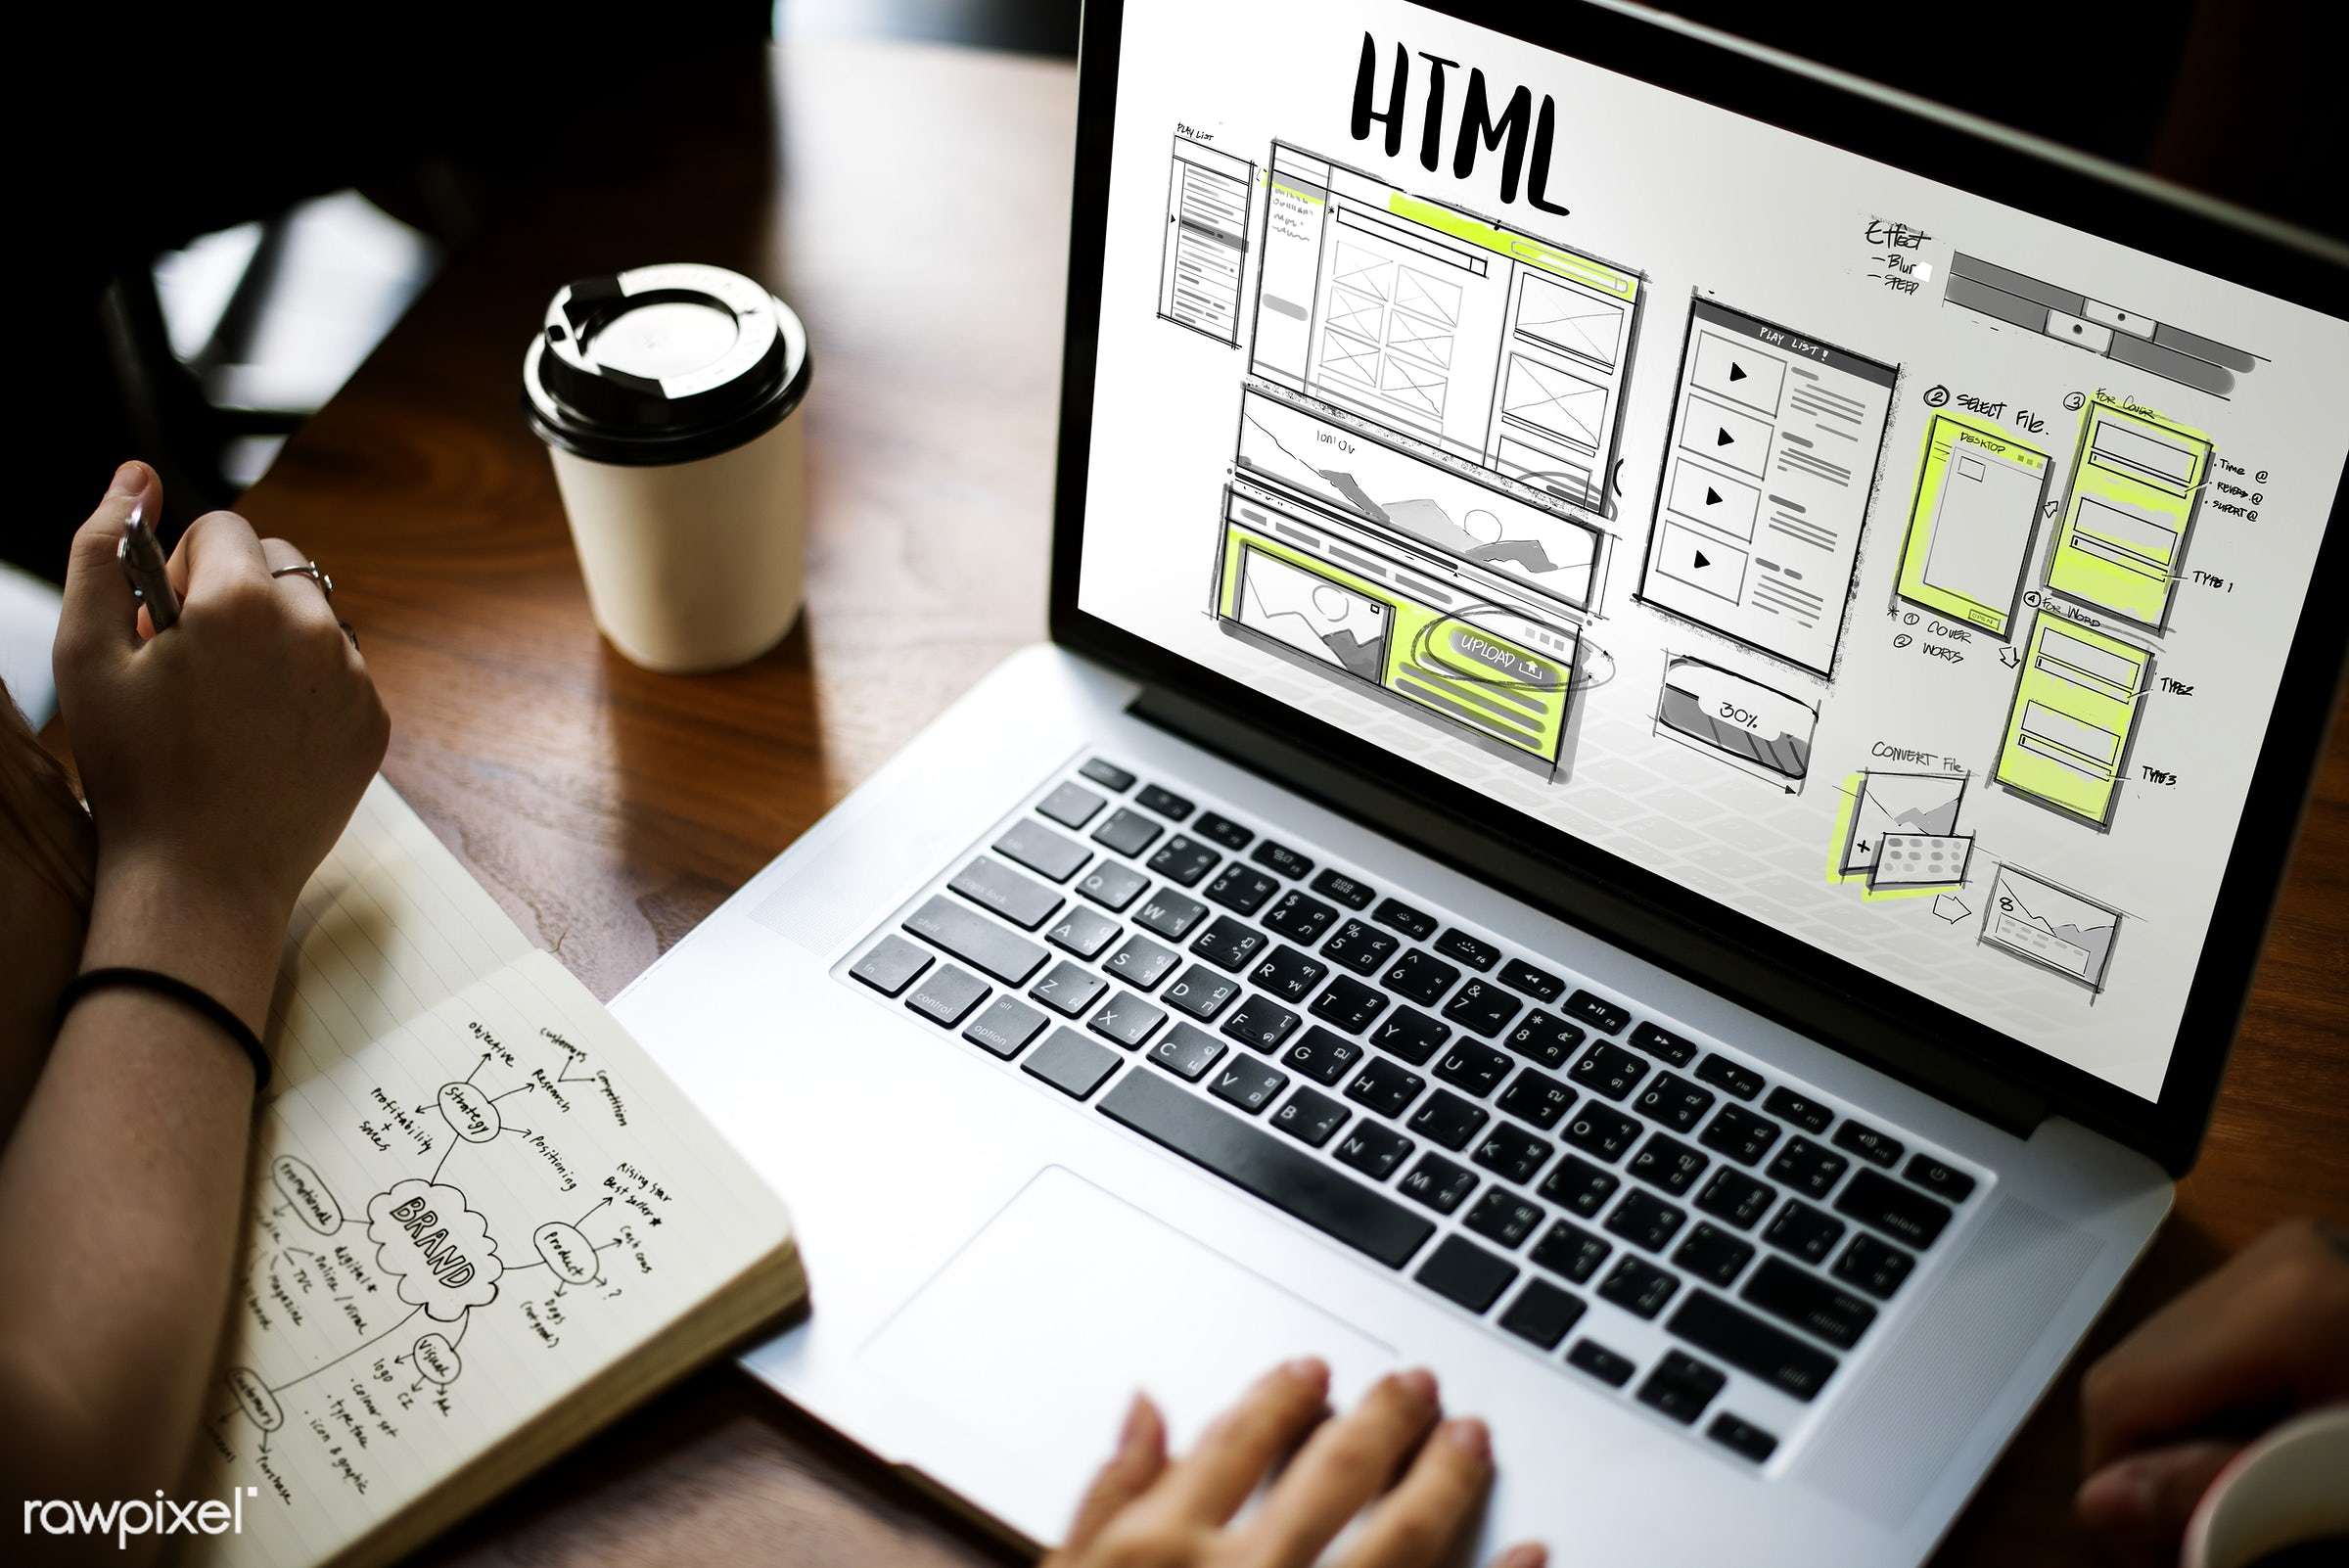 Online web design - content, http, web, browser, browsing, coding, coffee cup, design, develop, device, digital, digital...